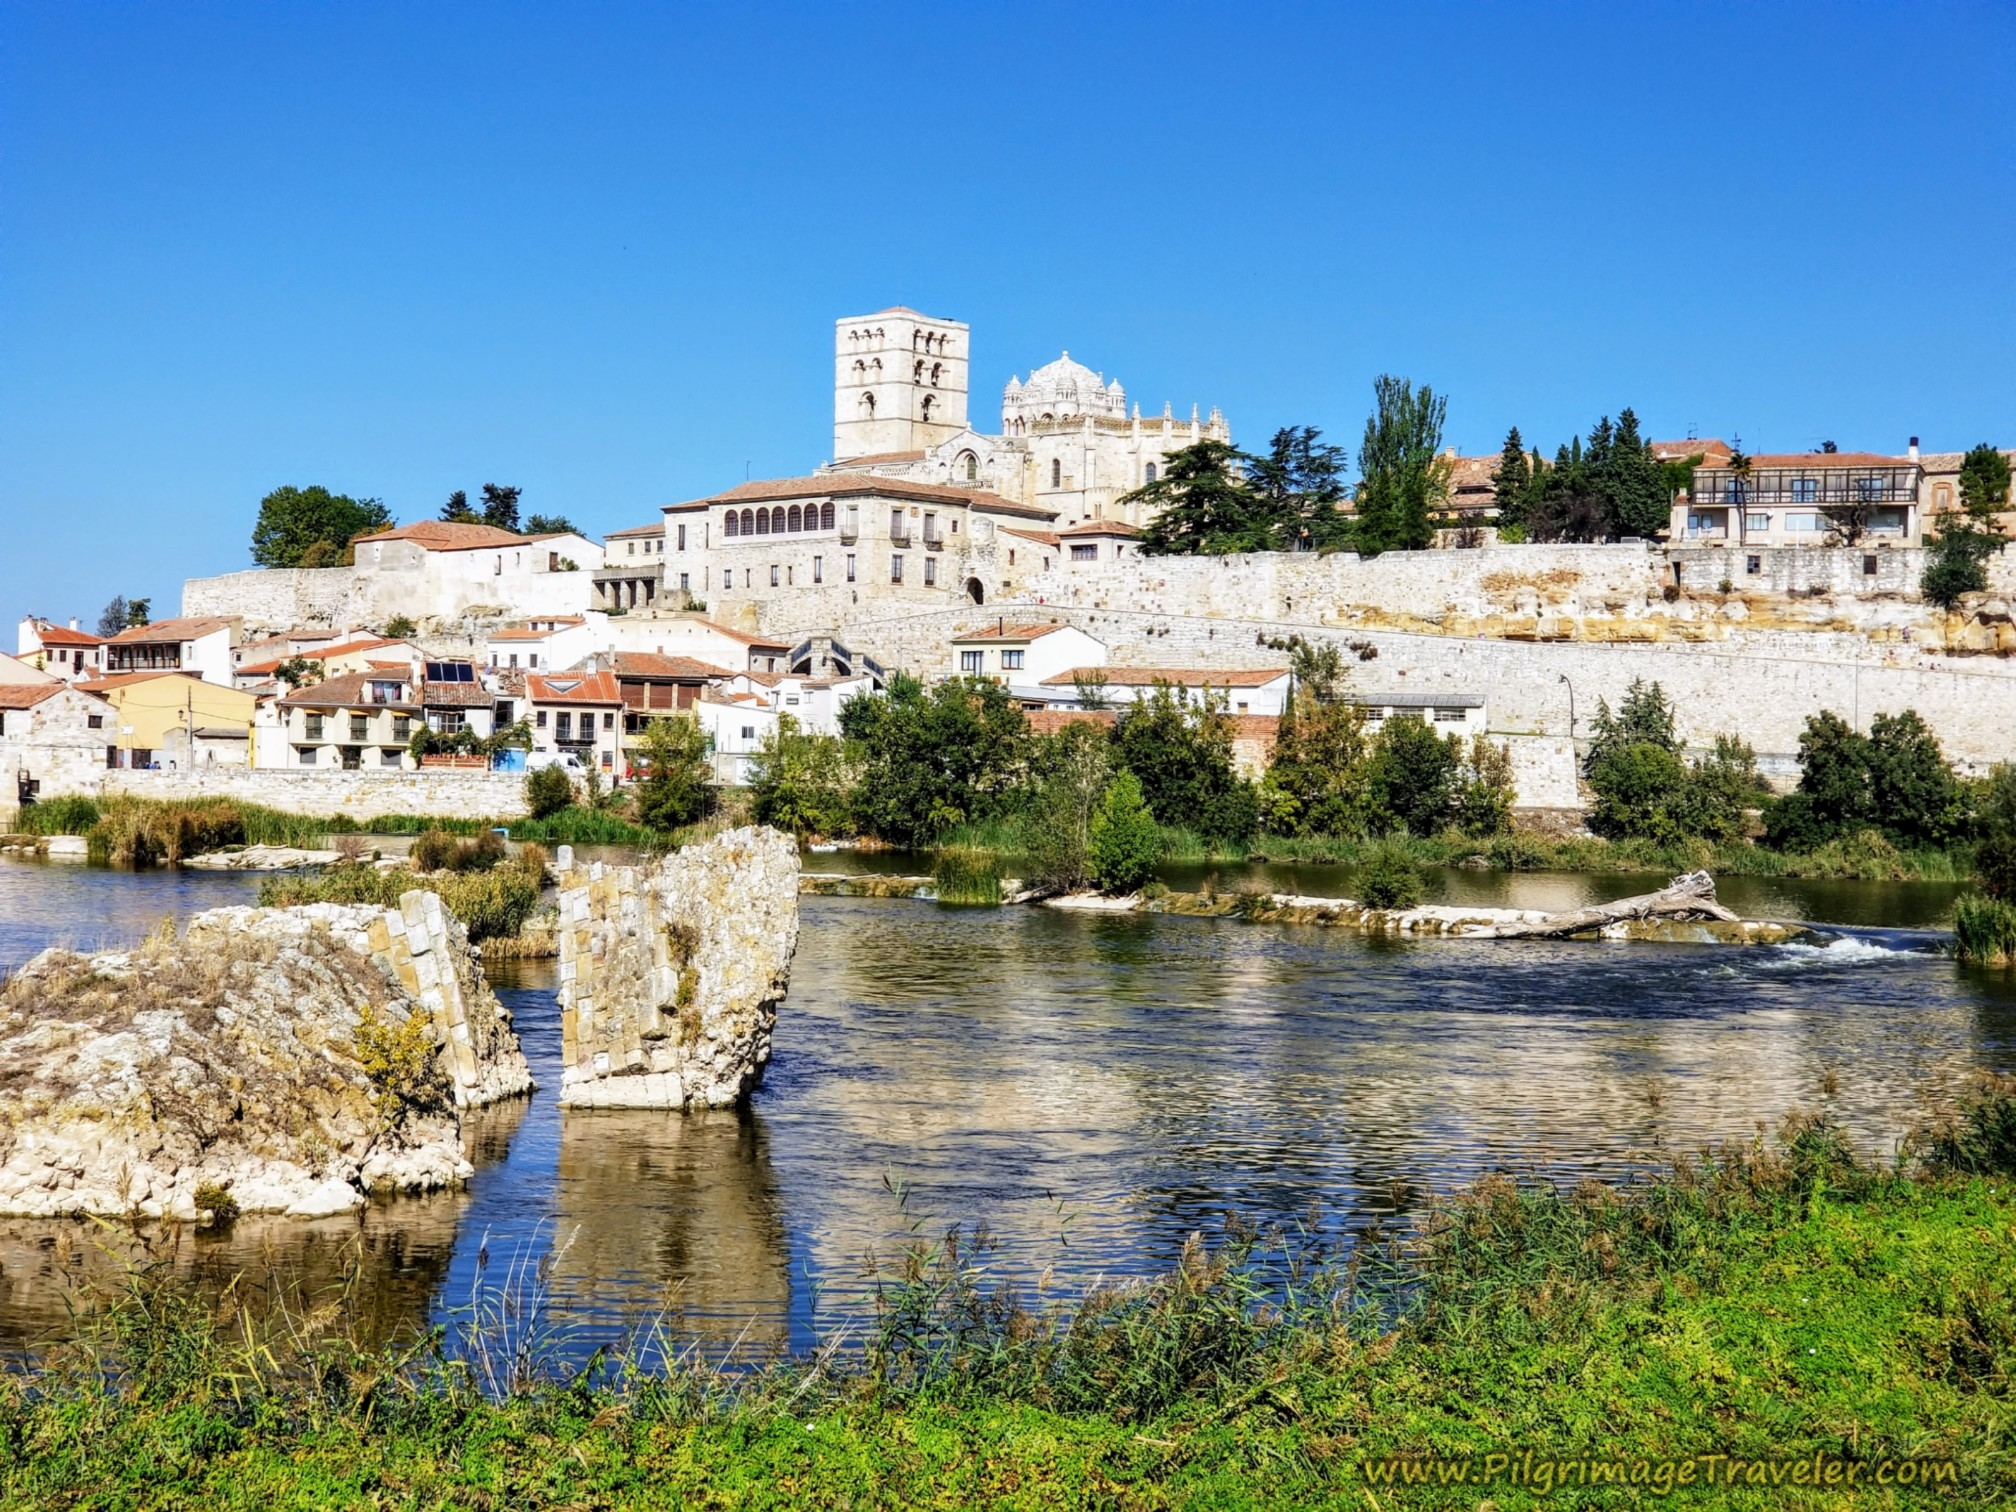 Views of Zamora and Vestiges of Old Roman Bridge